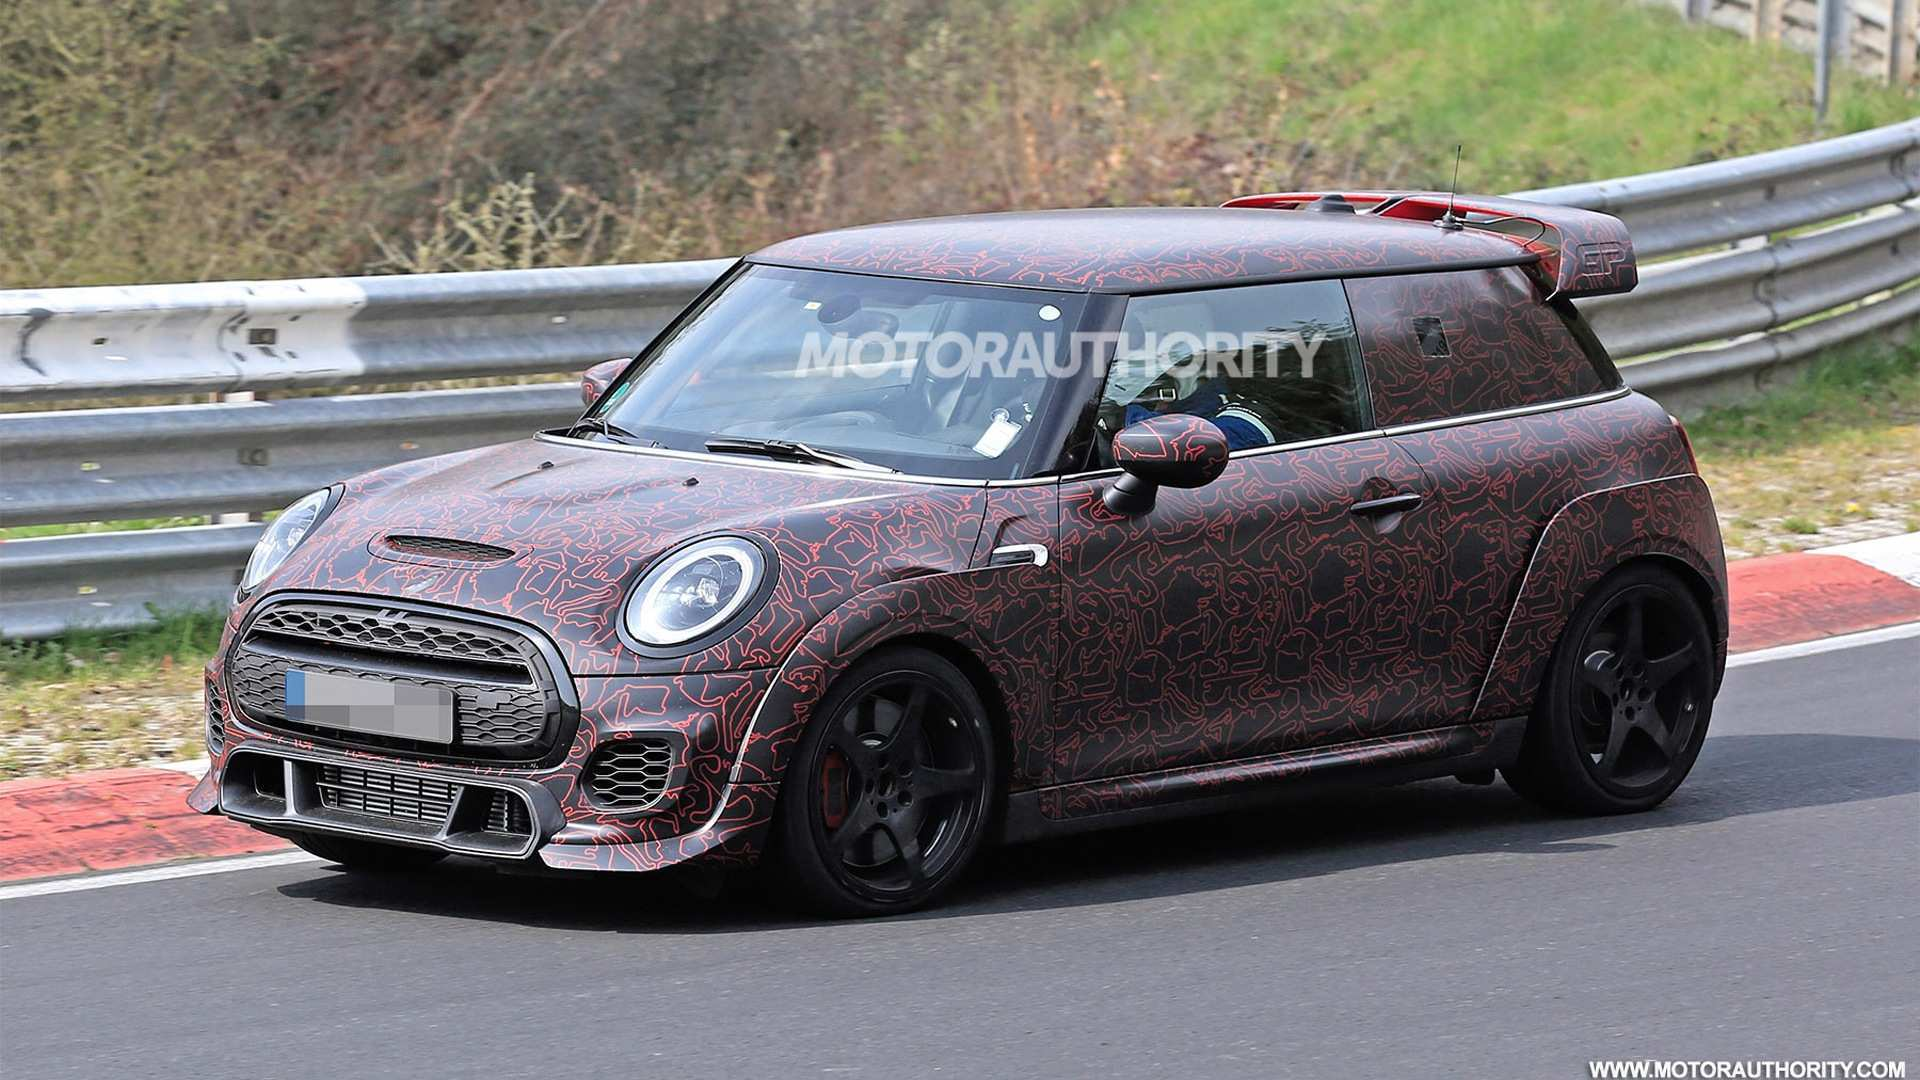 69 The 2020 Spy Shots Mini Countryman Research New